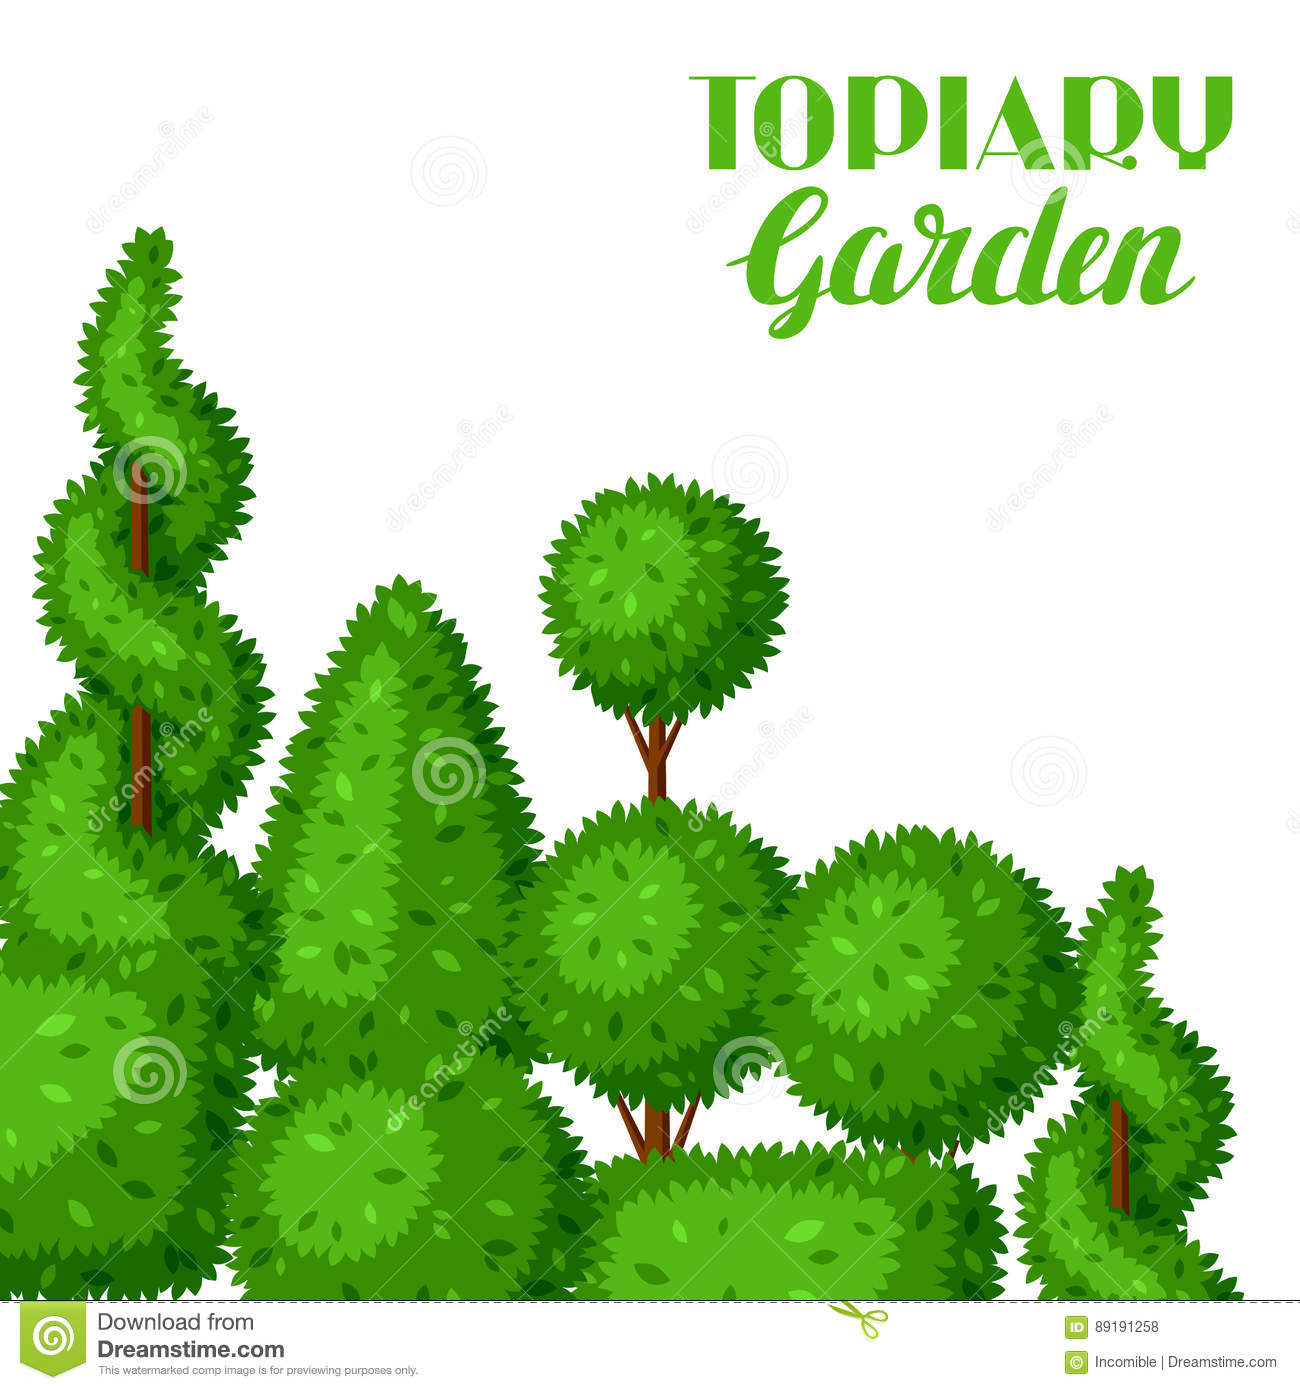 Boxwood Topiary Garden Plants Background With Decorative Trees Stock Vector Illustration Of Design Bush 89191258